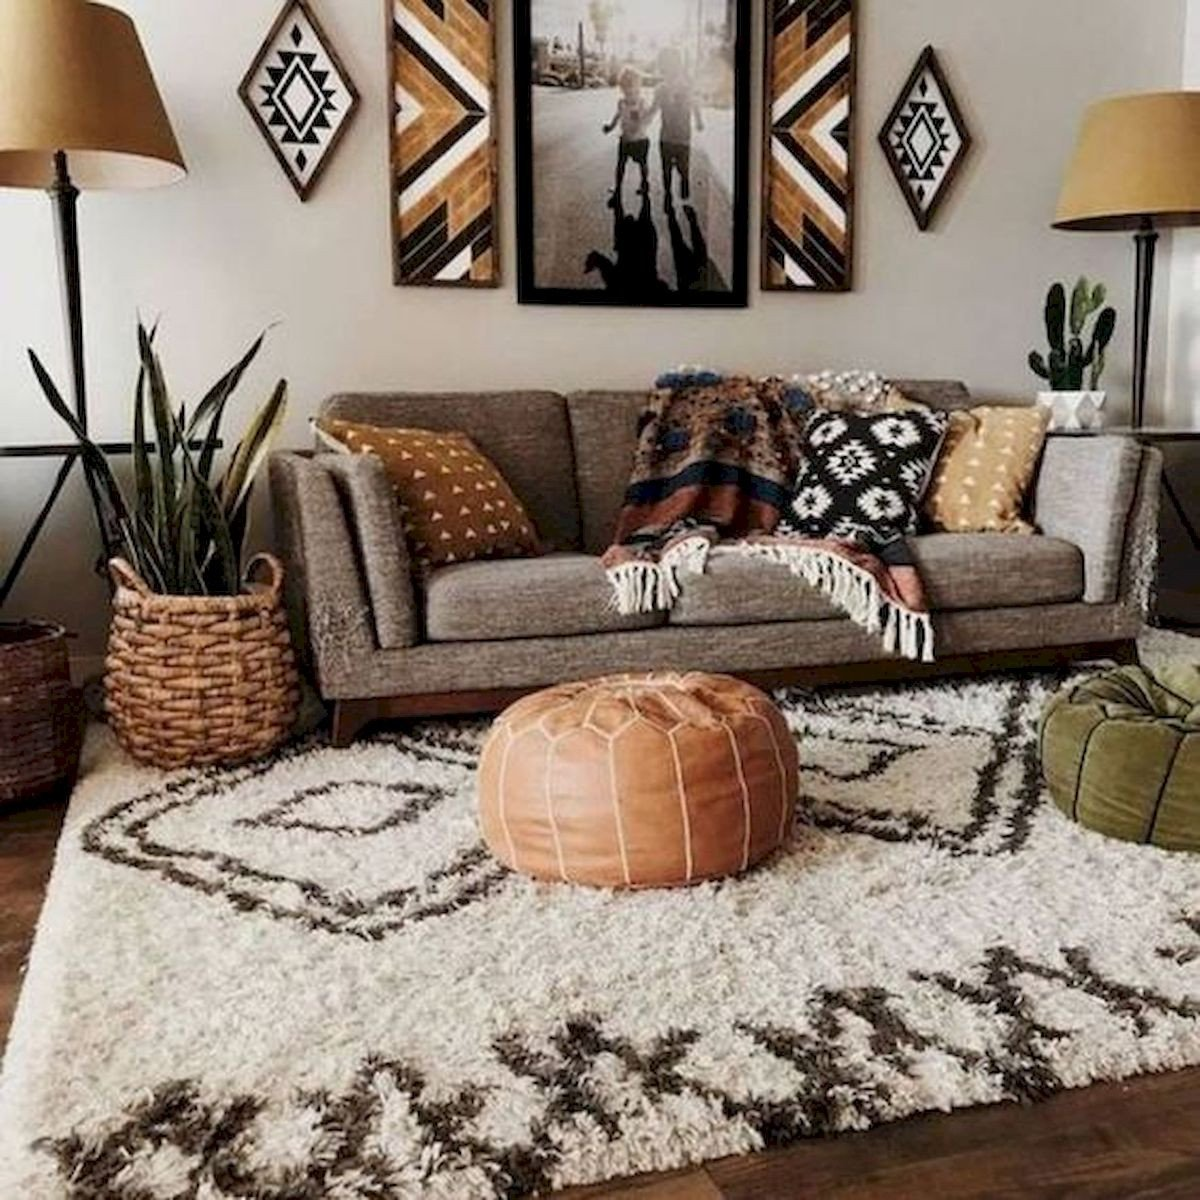 Apartment Living Room Decor Ideas Beautiful 55 Bohemian Living Room Decor Ideas Googodecor